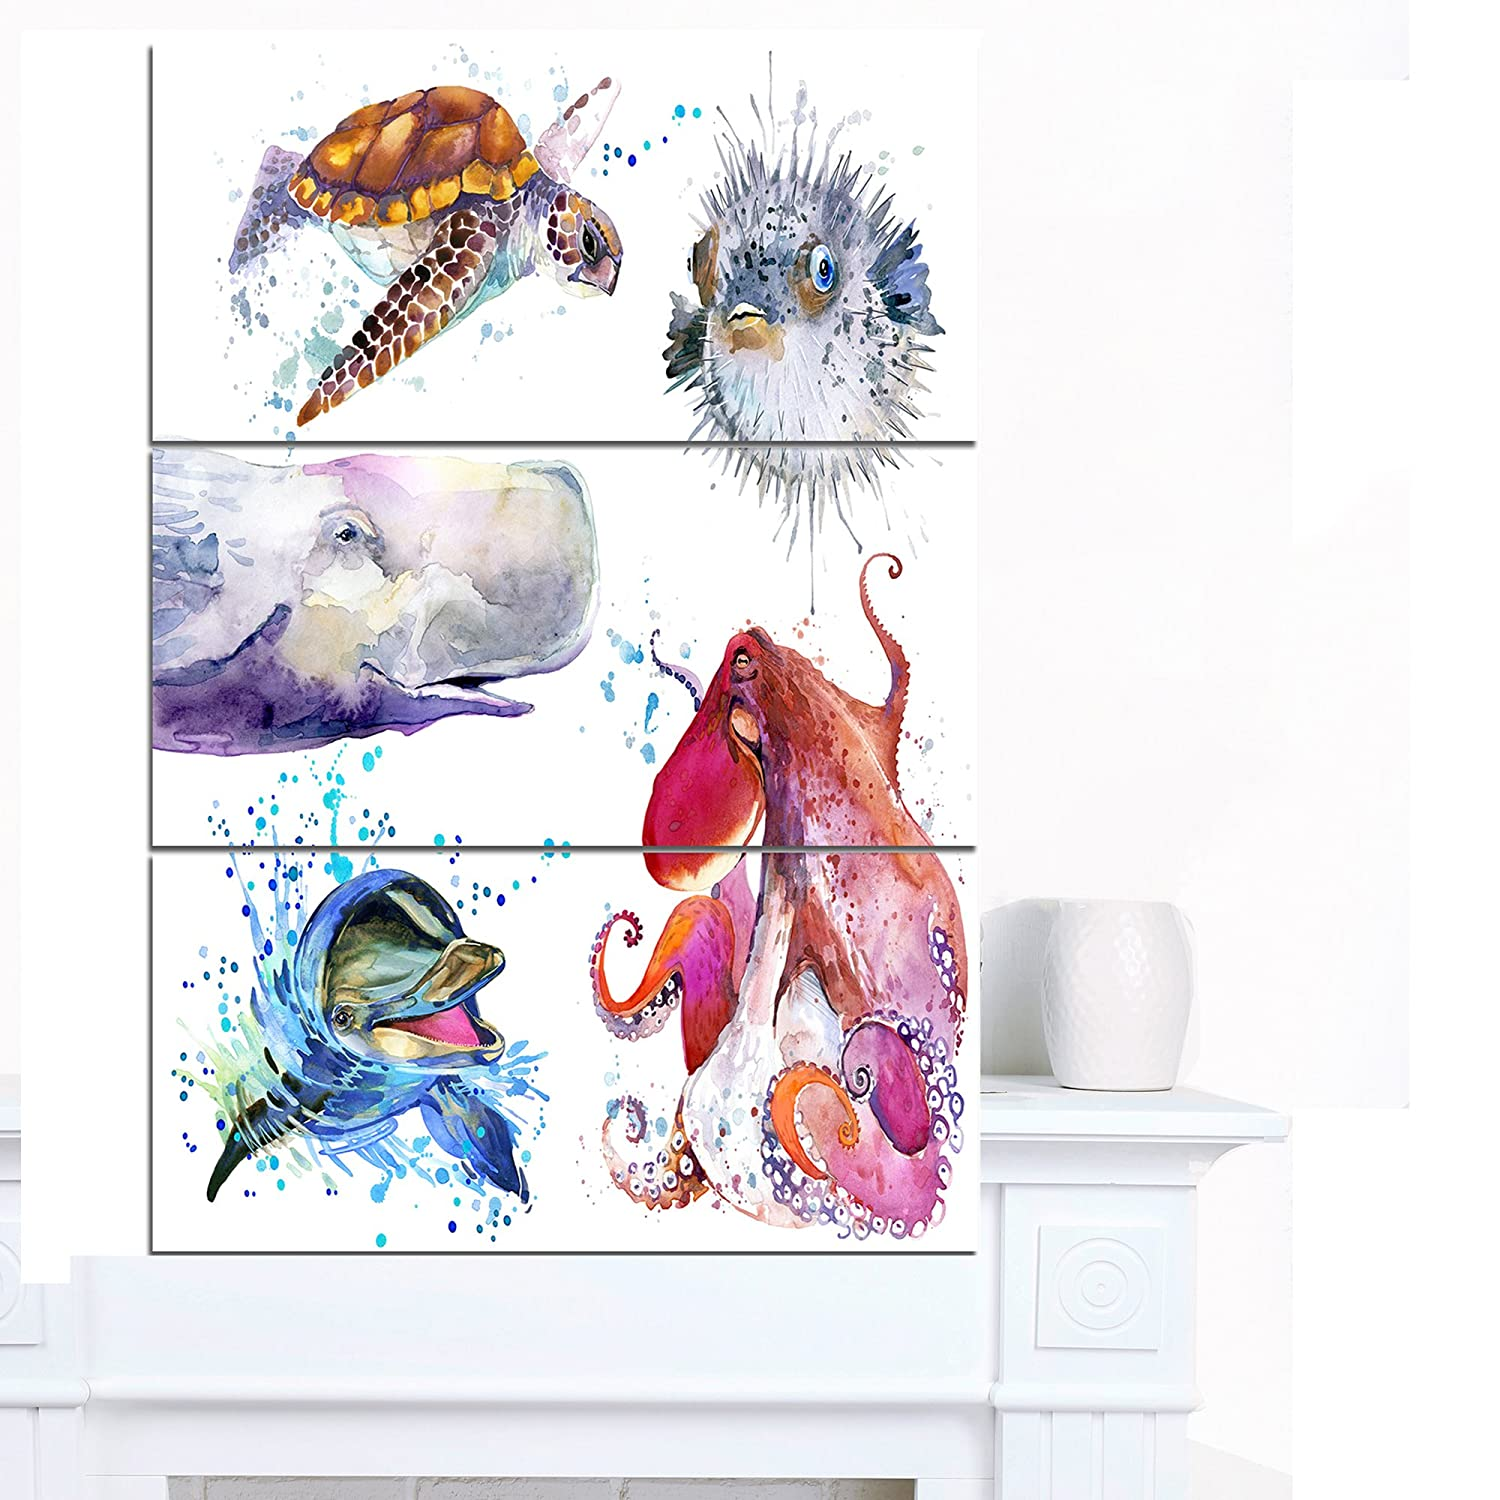 CDM product Designart PT13255-3PV Amazing Undersea Life Collage Contemporary Animal Art Canvas, 28x36 small thumbnail image